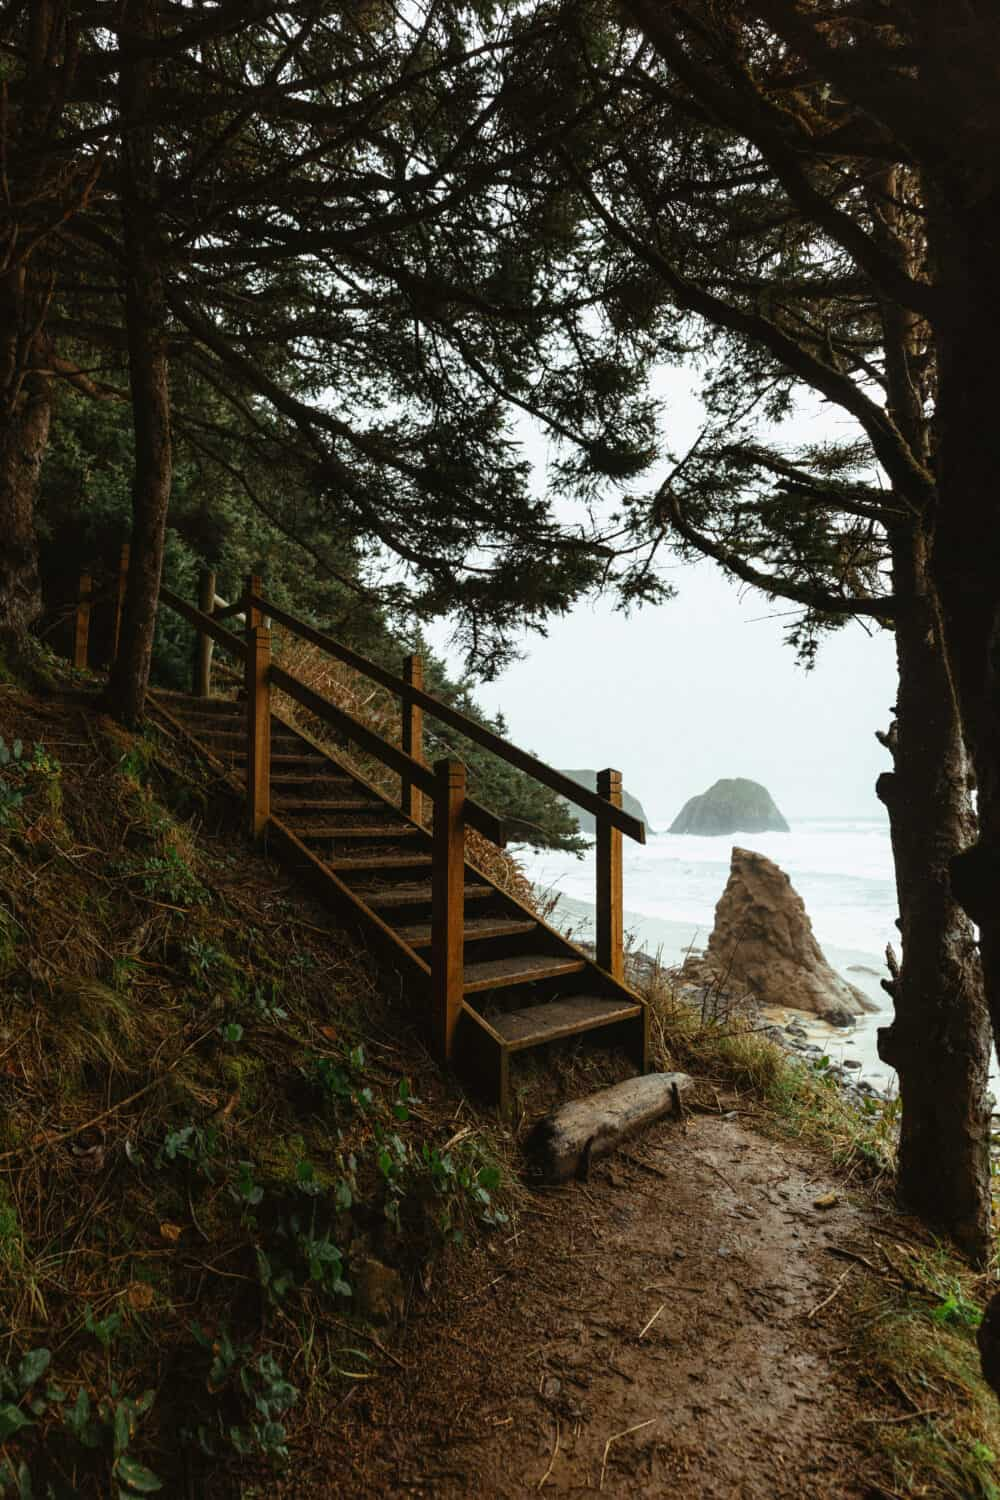 Wooden stairs leading down to Crescent Beach